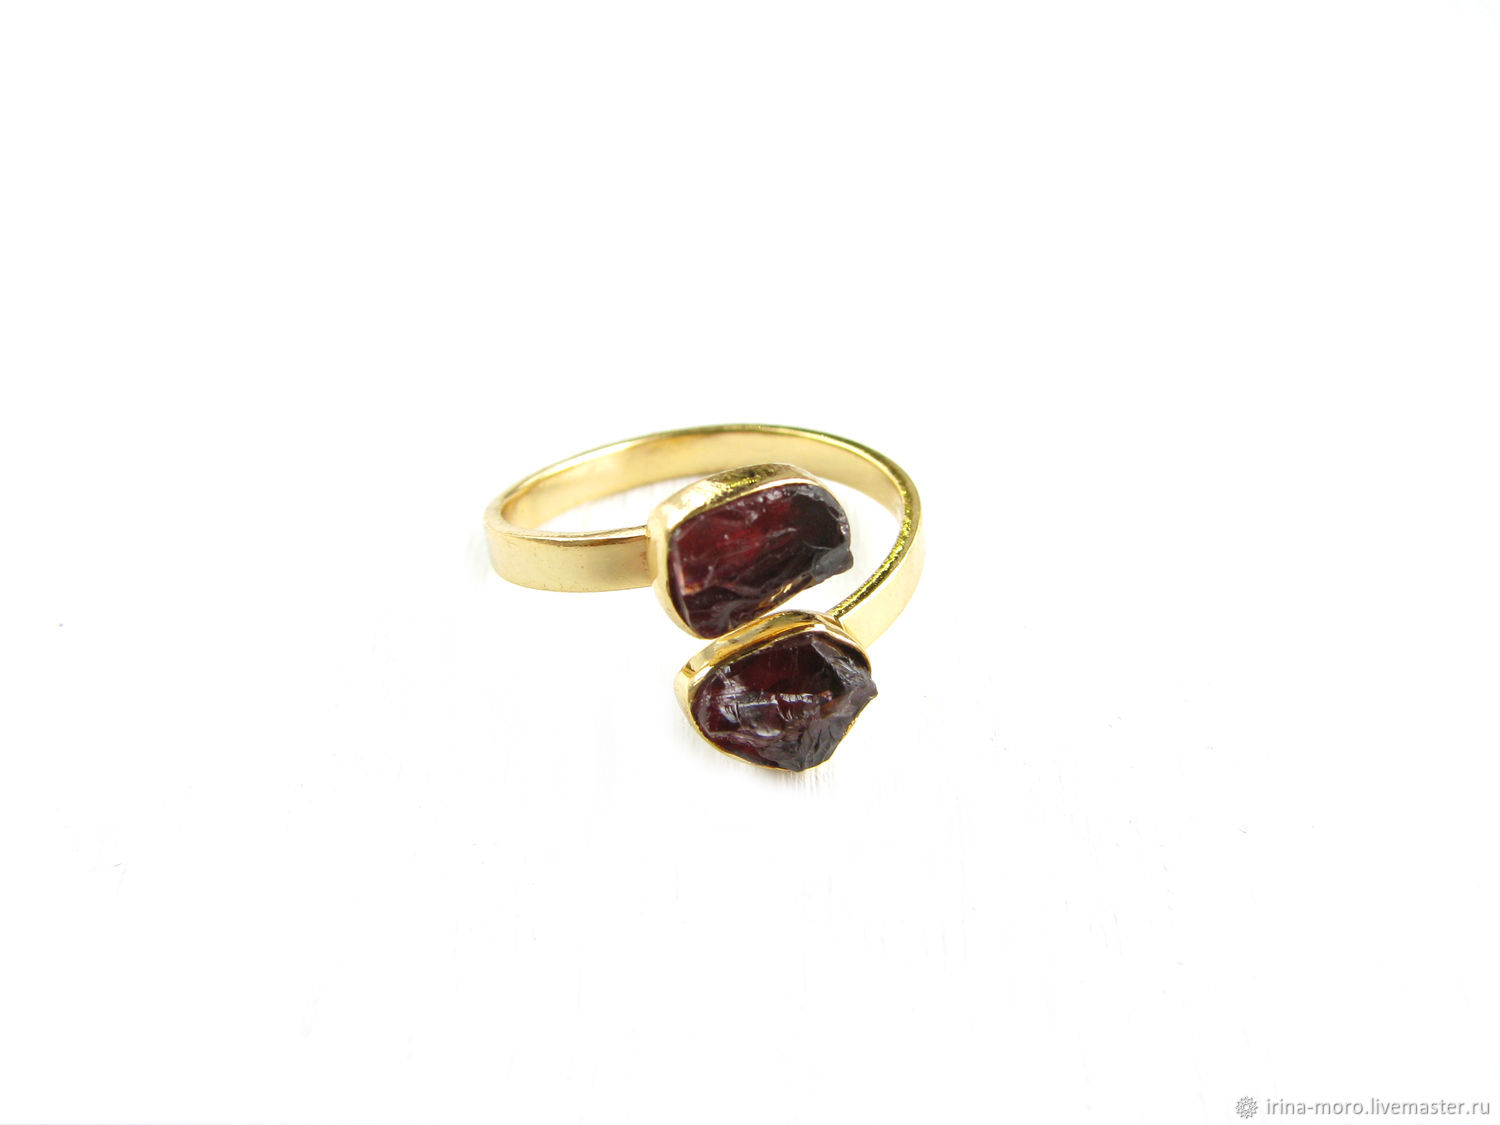 Gold ring with garnet 'Bordeaux' ring with grenades, Rings, Moscow,  Фото №1